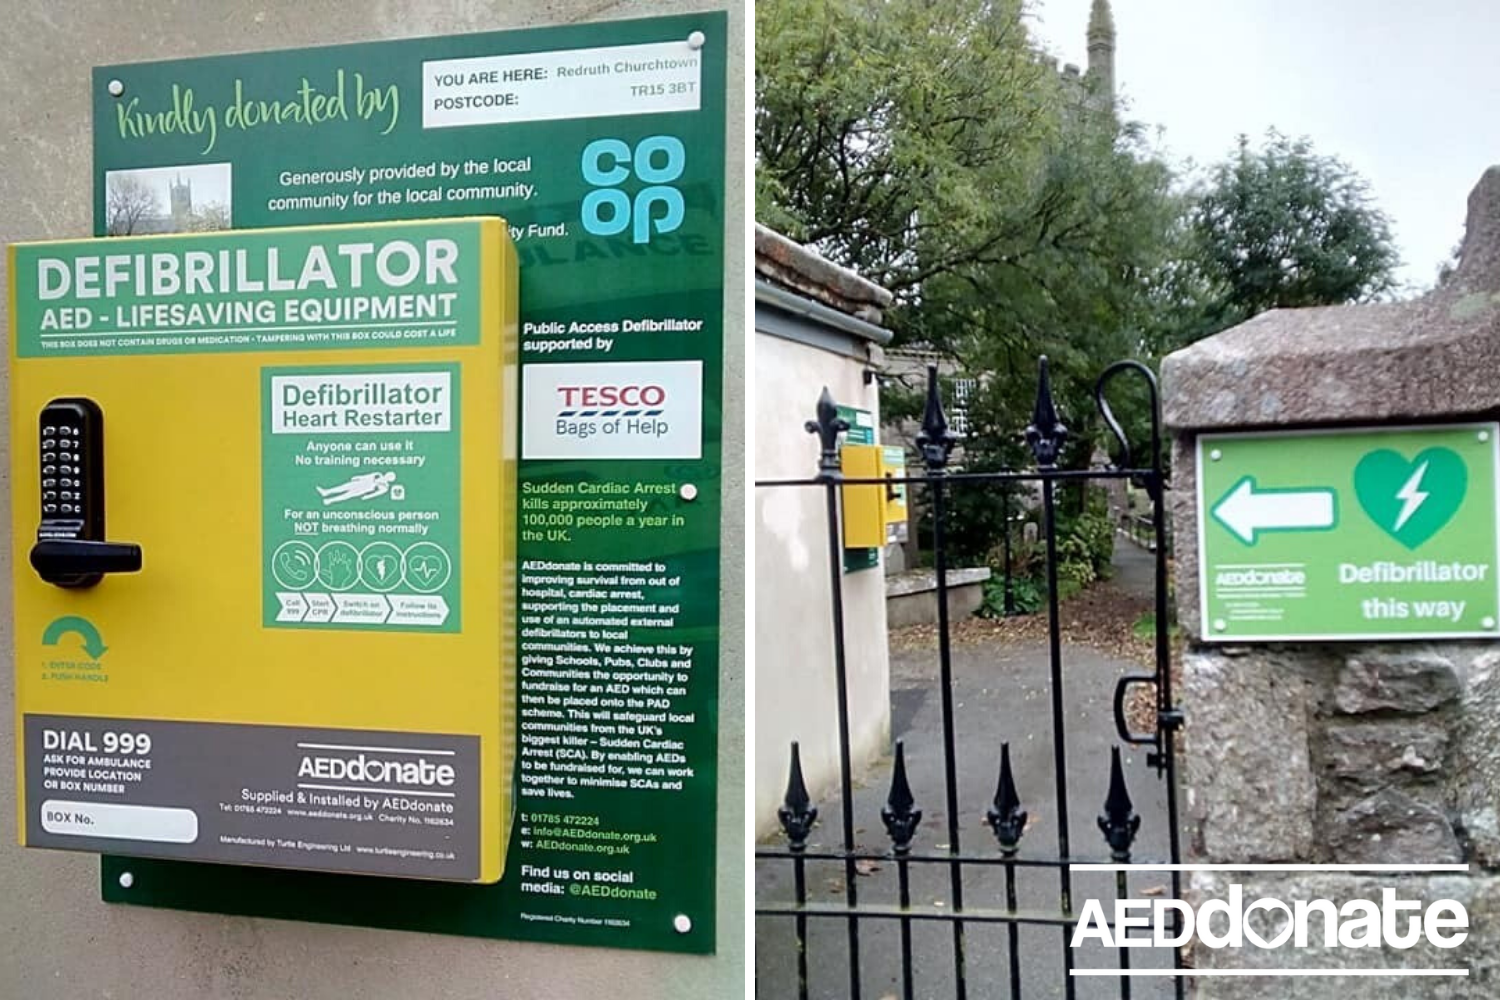 Defibrillator installed at St Euny Church, Redruth